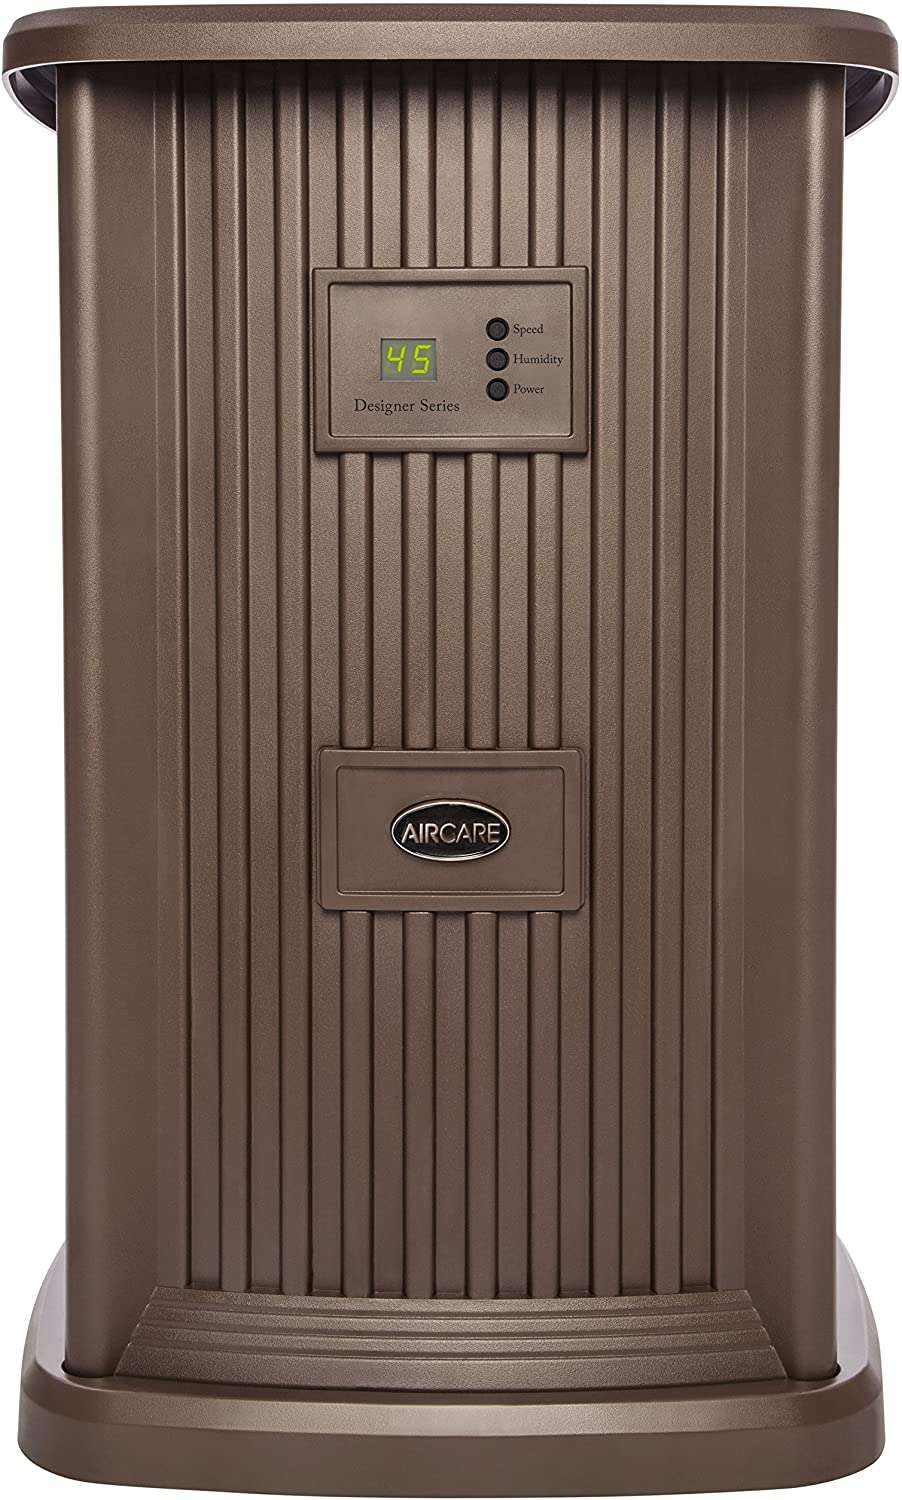 AIRCARE Nutmeg Digital Style Whole House Pedestal Evaporative Humidifier for 2400 sq. ft